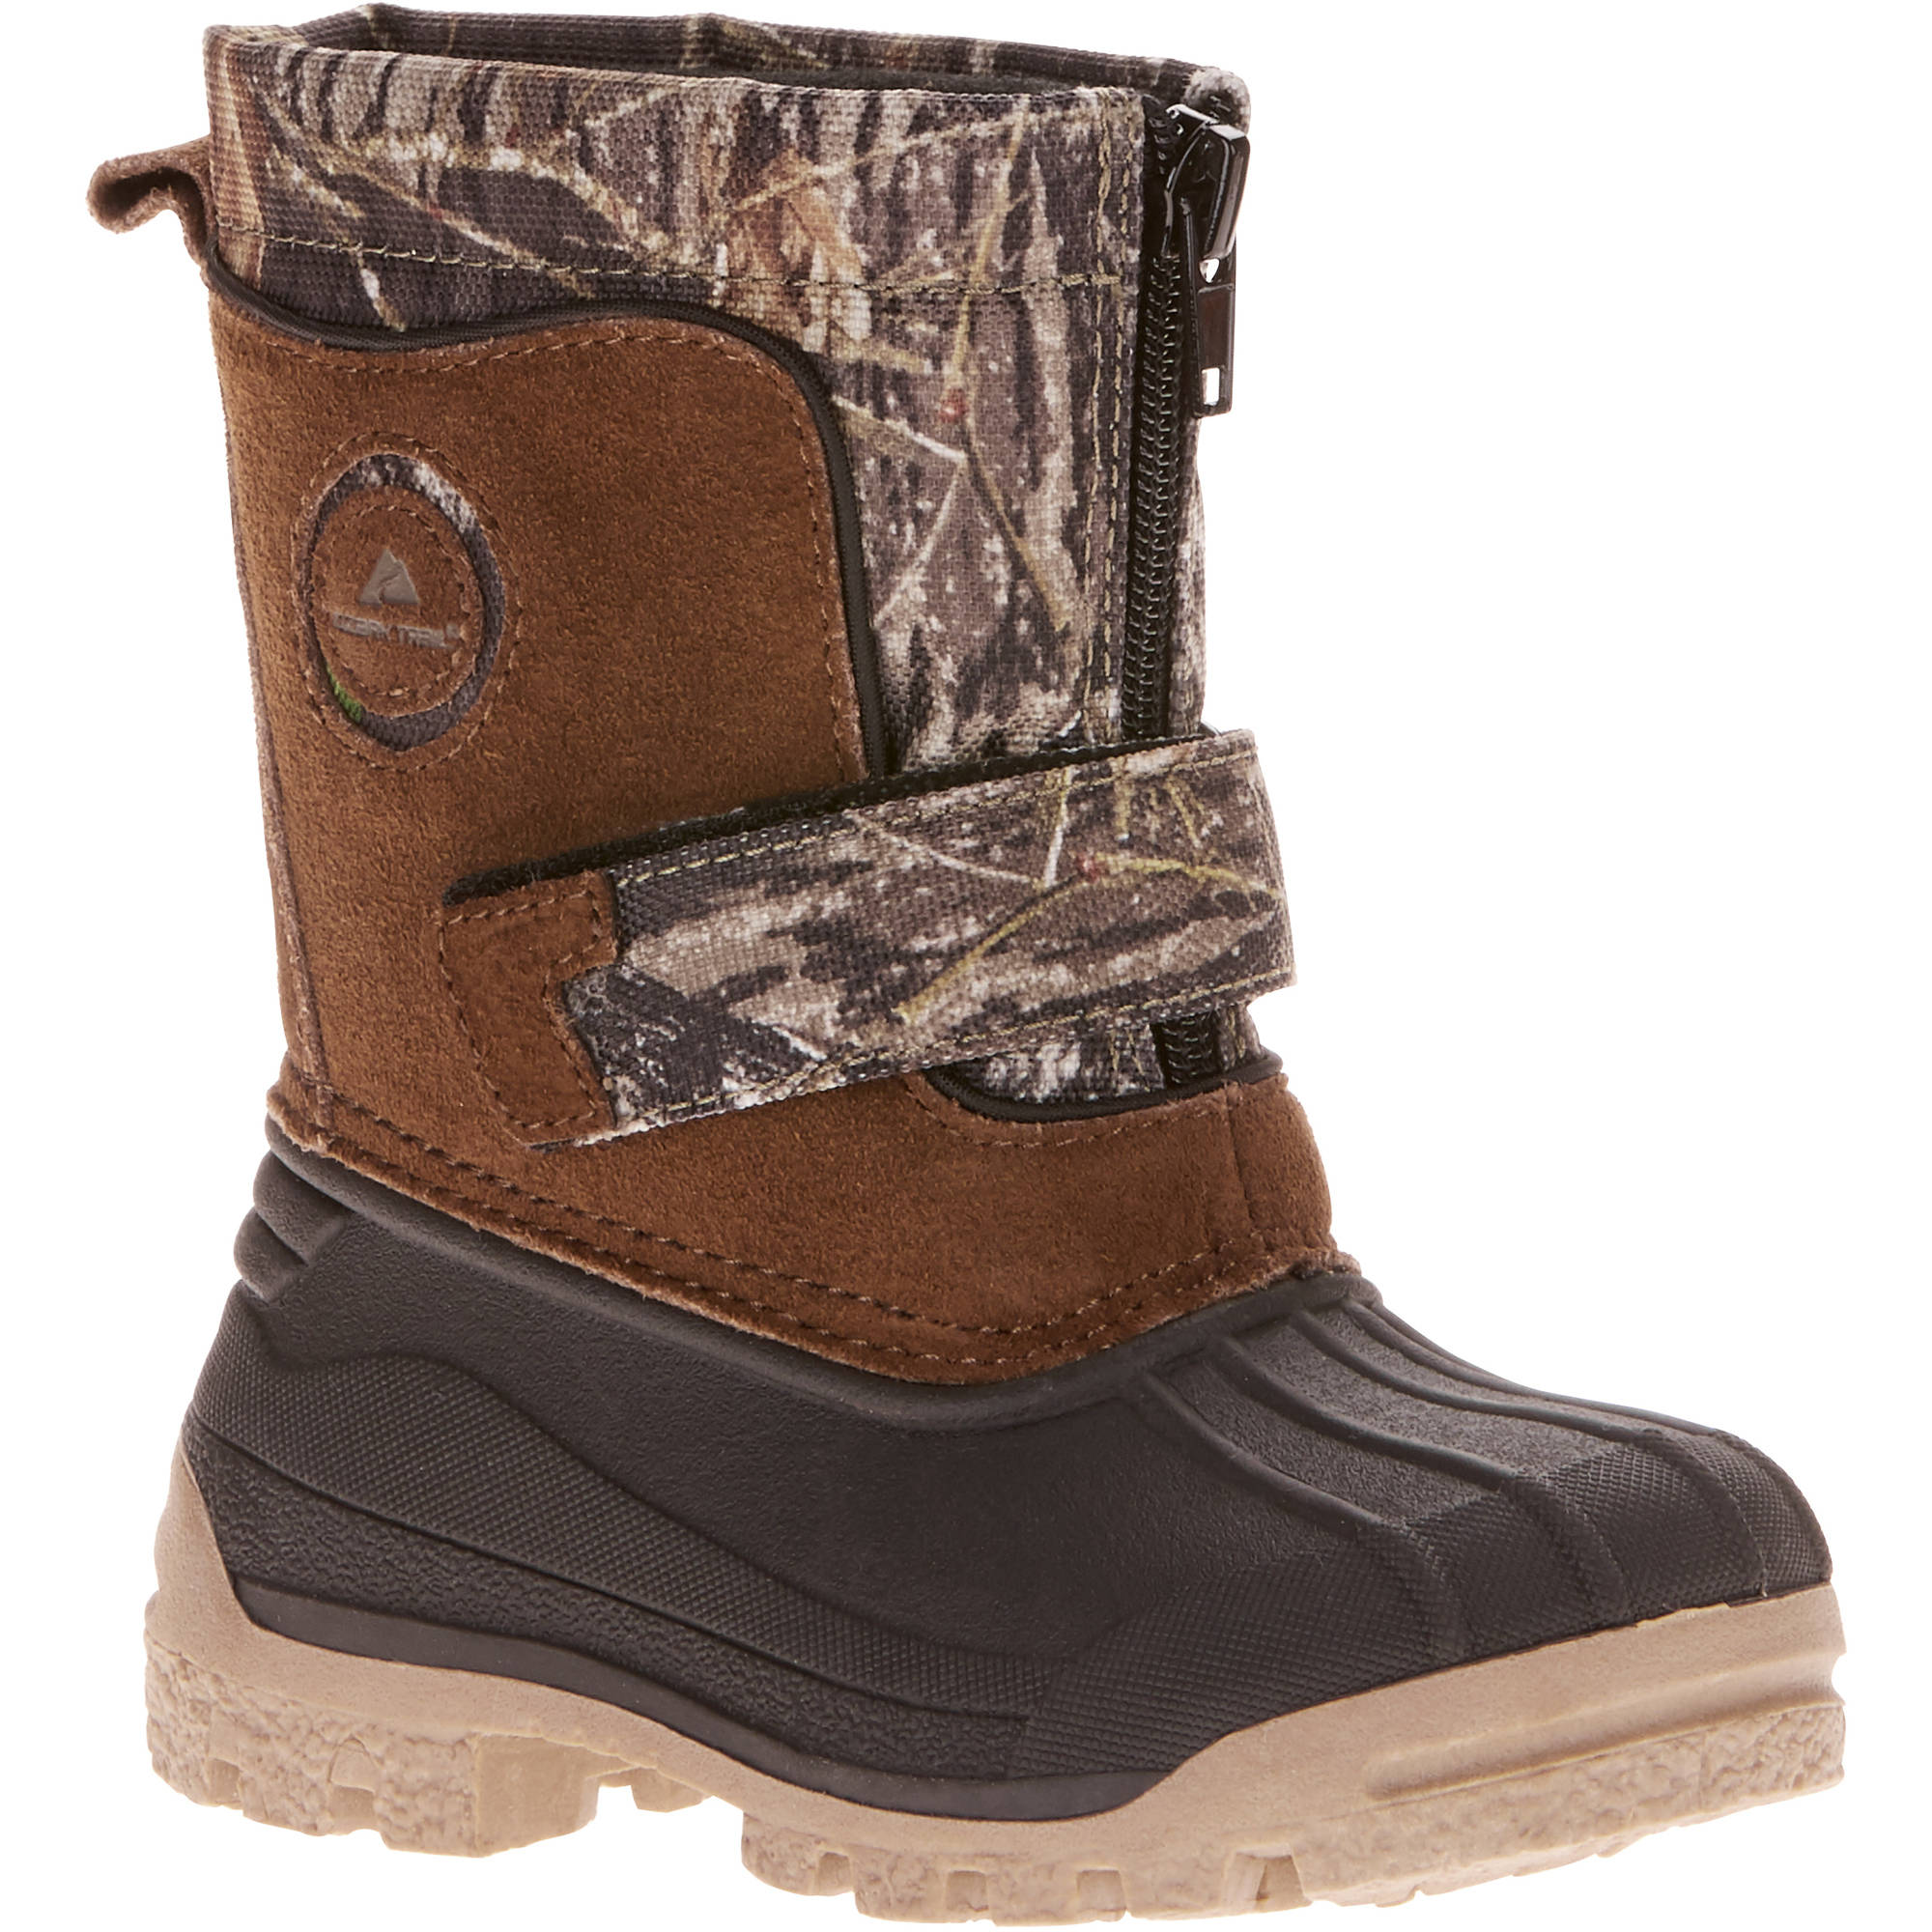 Ozark Trial Toddler Boys' Pac Zip Winter Boot